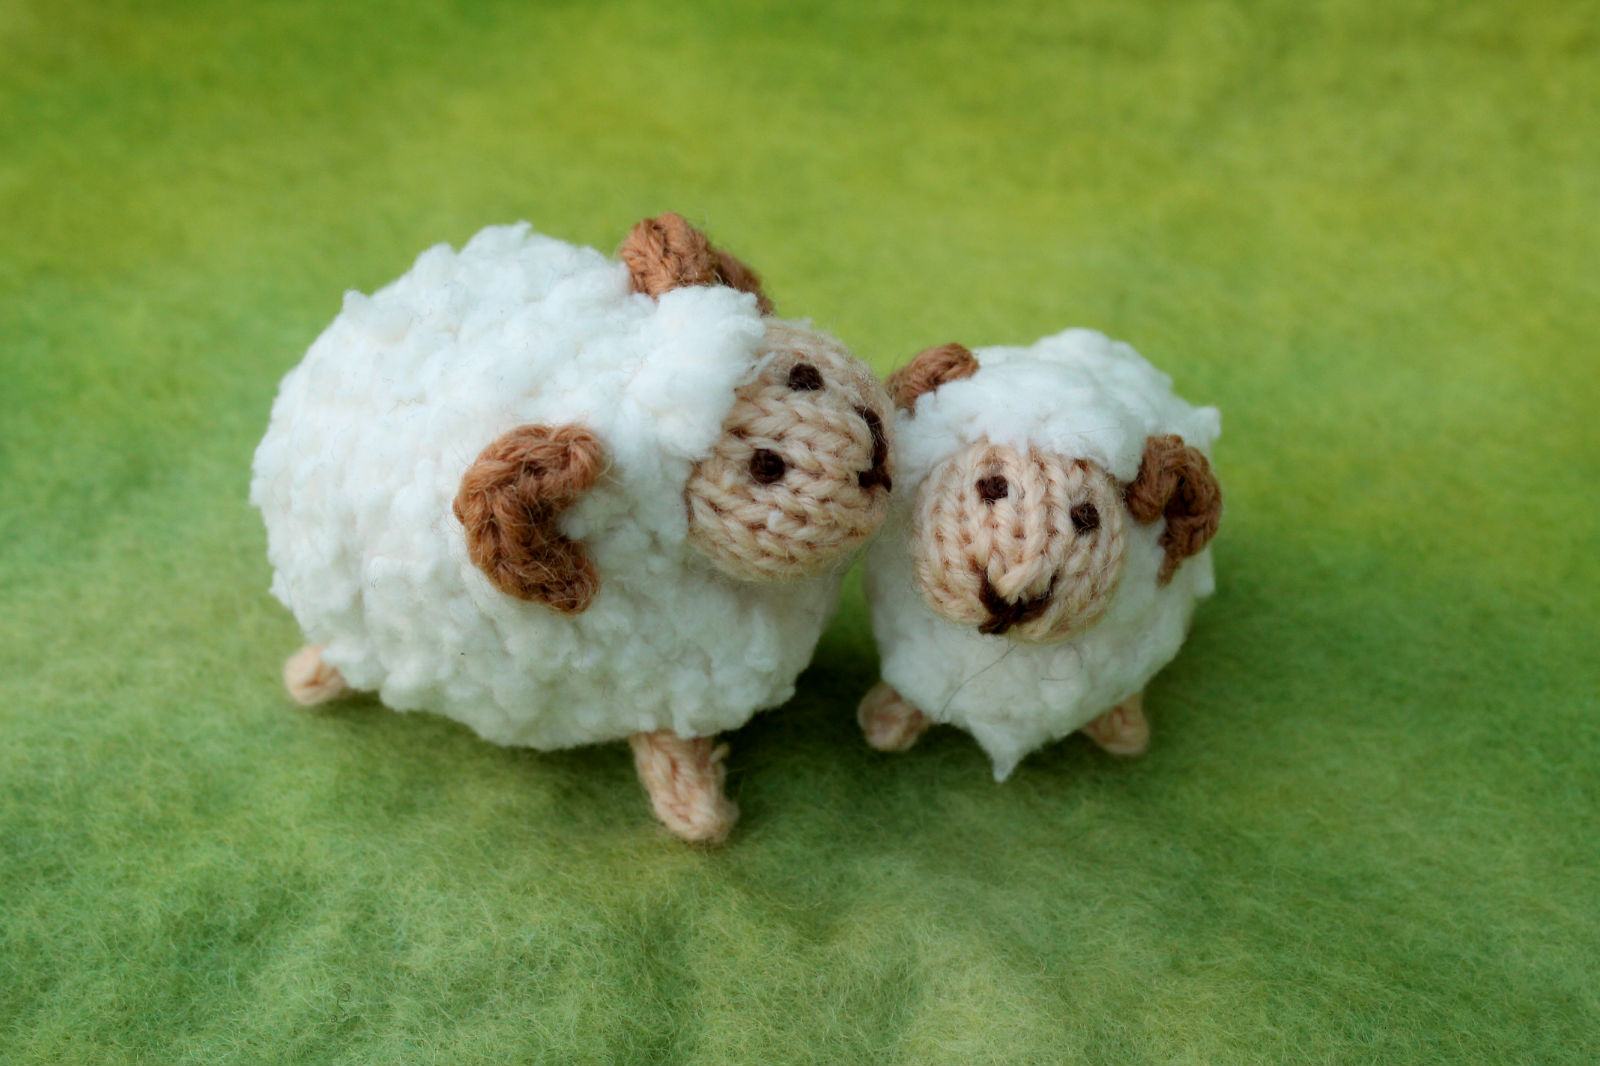 Knitting pattern knits by sachi httpsetsylisting216522036mummy sheep and baby lamb knitting bankloansurffo Gallery